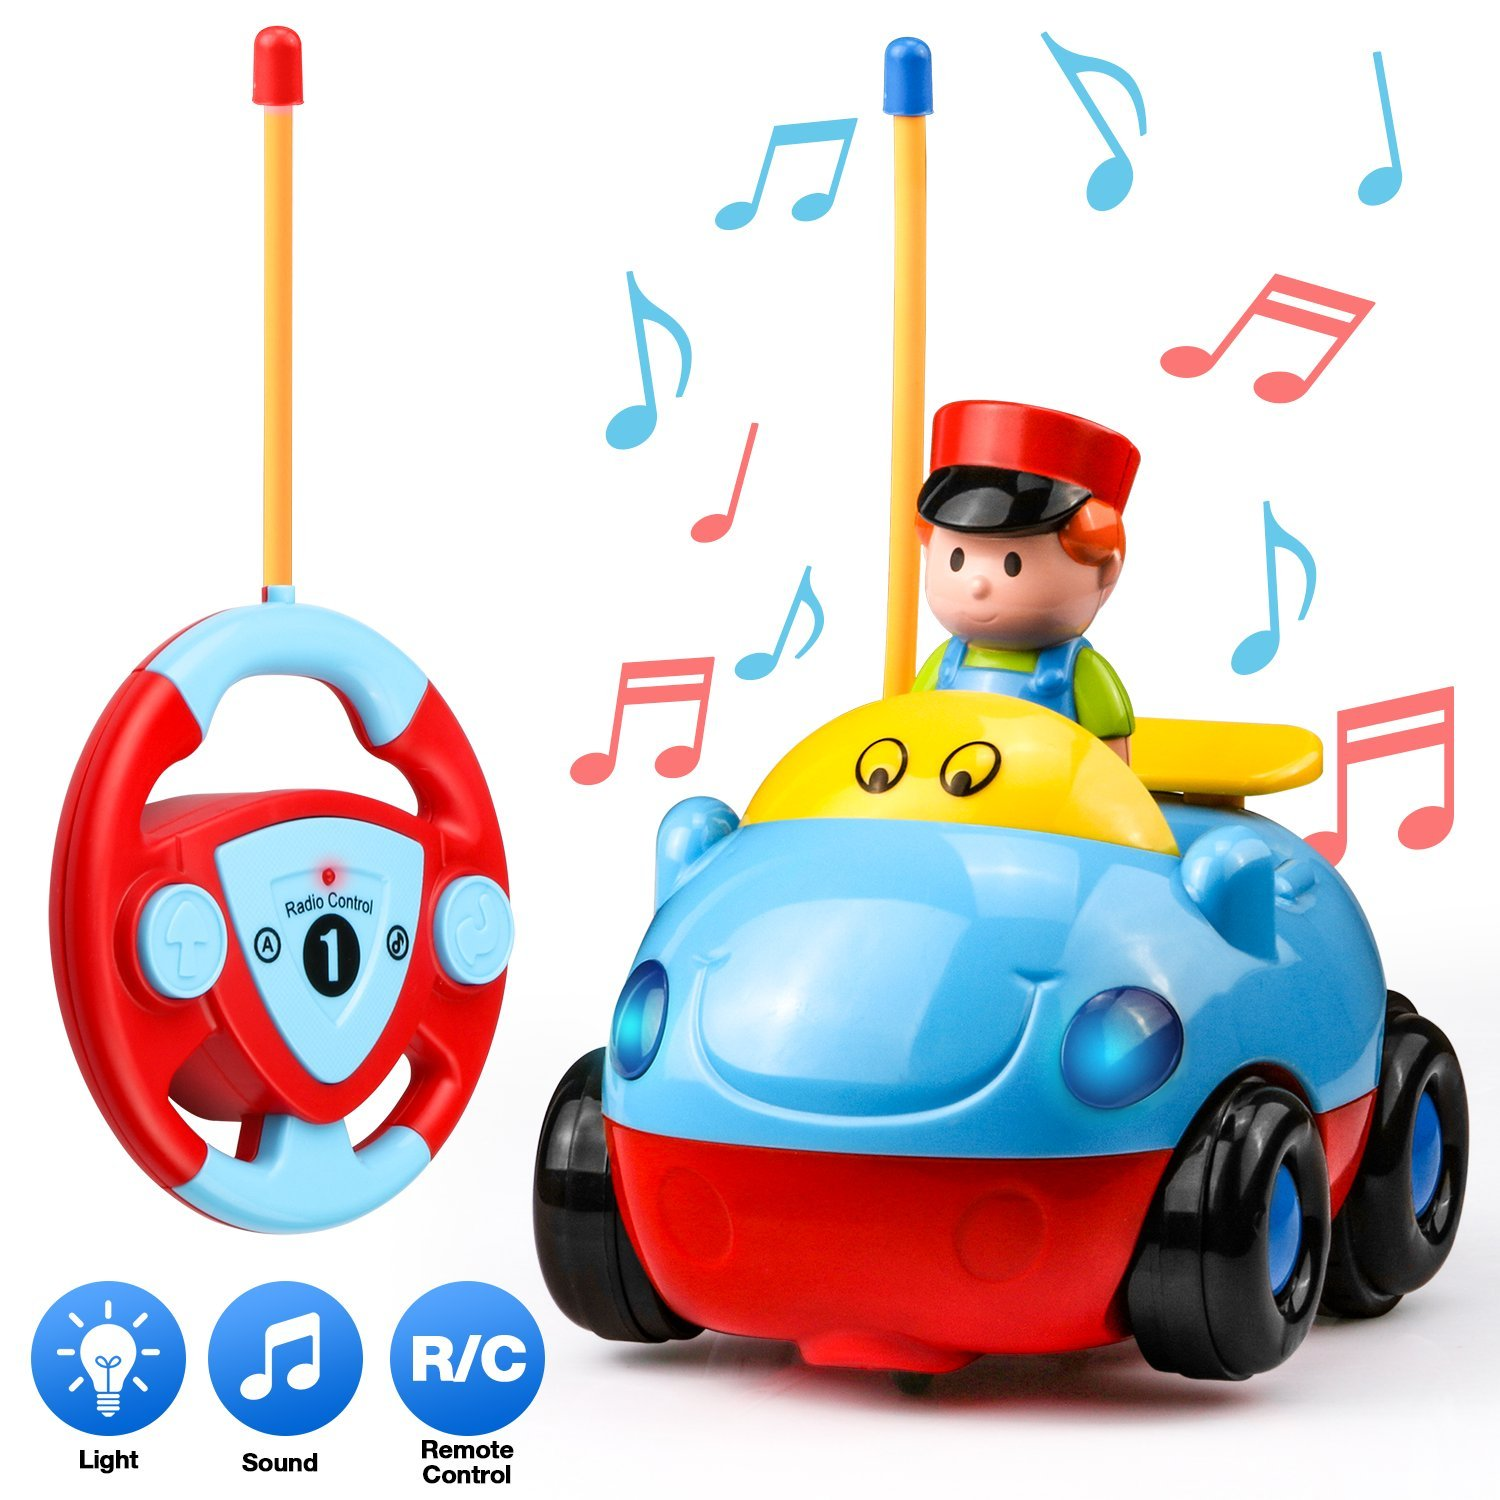 UNEEDE Toddler Remote Control Car Cartoon Rc Race Car Radio Control Vehicle Rc Plice Car Remote Control Toy with Music, Light for Baby Kid Boy Toddler Rc Car Toy as Children Holiday Birthday Gift